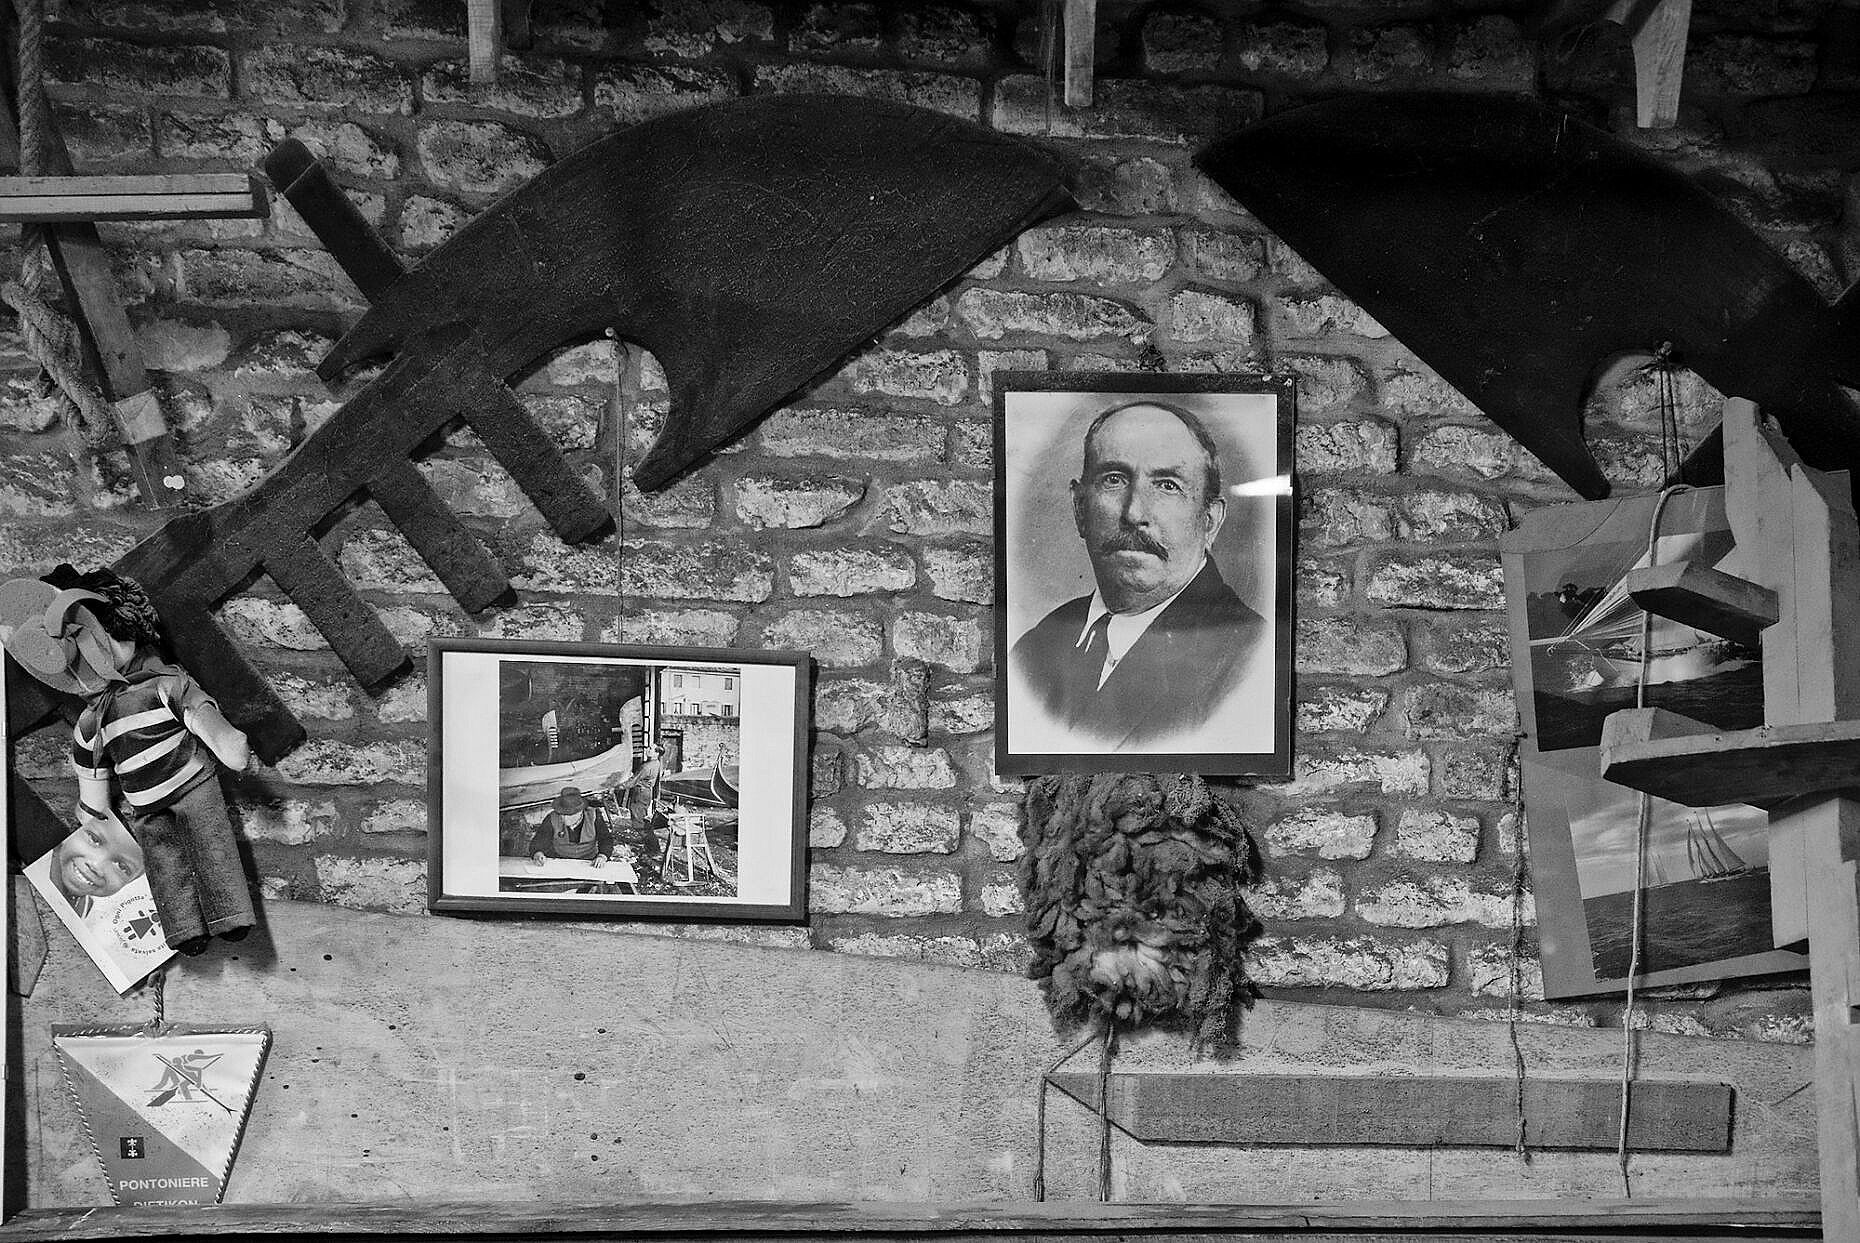 Photo of the founder Domenico Tramontin and other memorabilia on the wall of the squero Tramontin